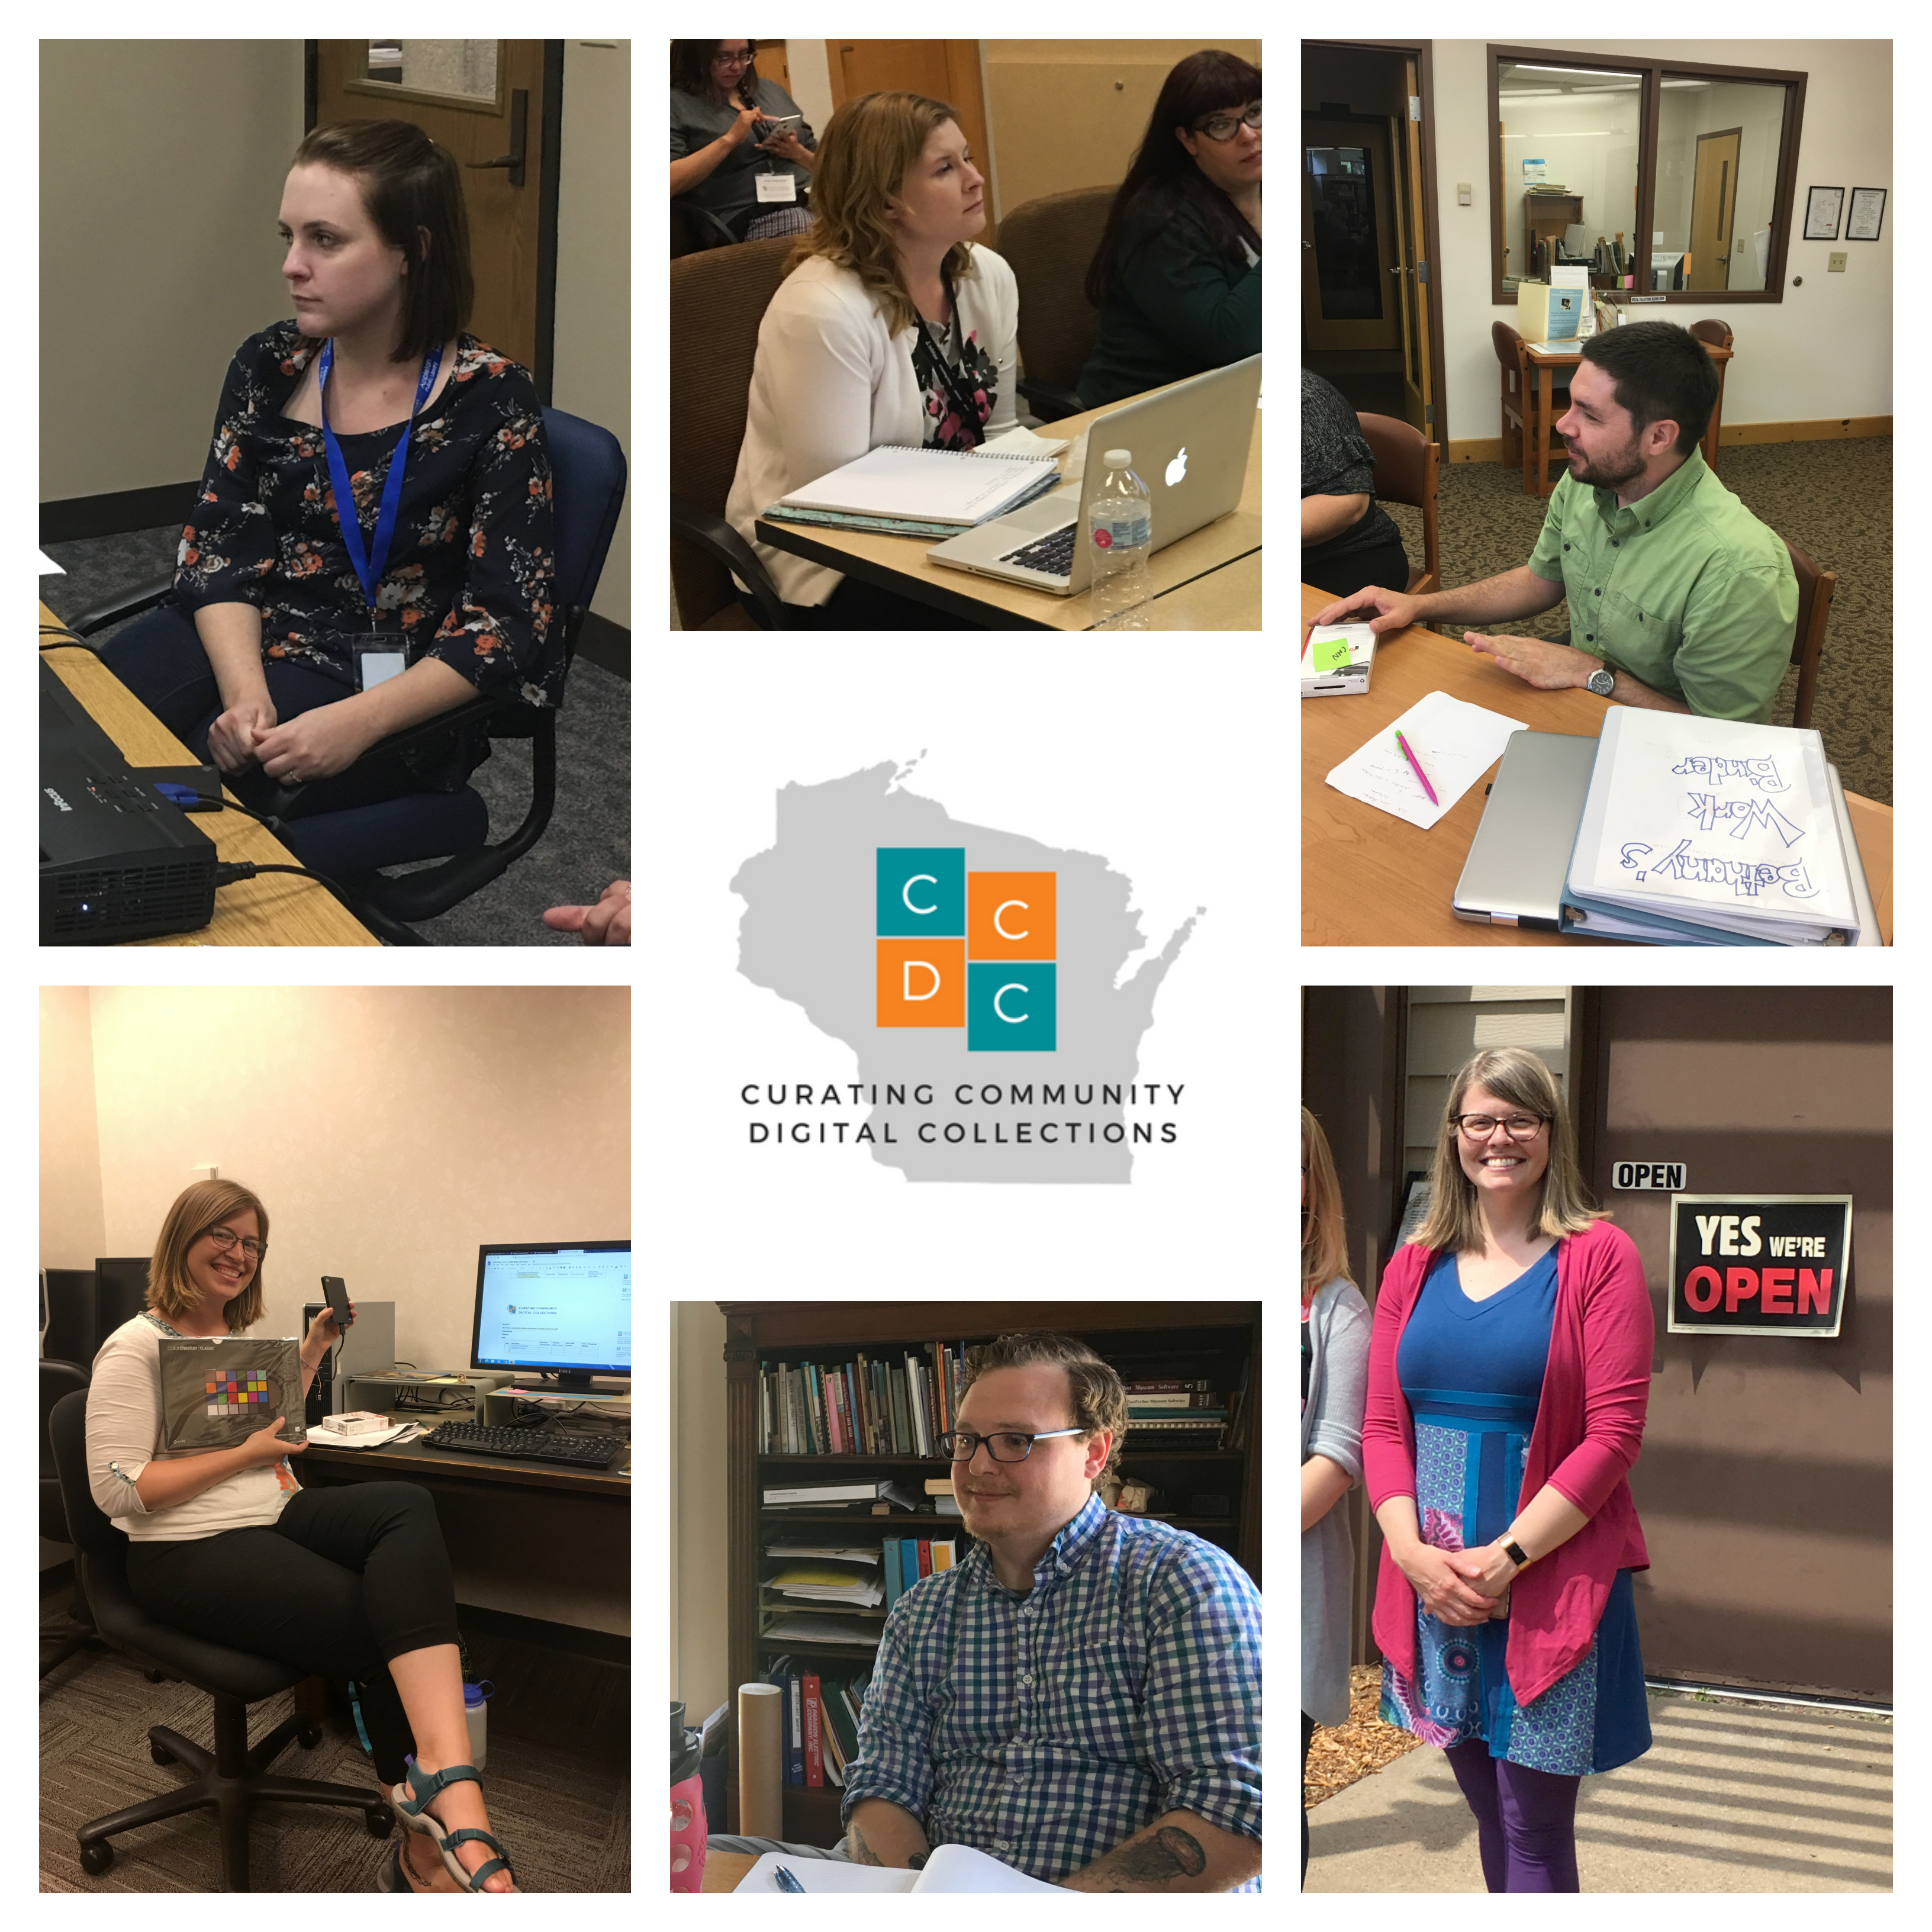 Curating Community Digital Collections 2018 - photo collage of student participants